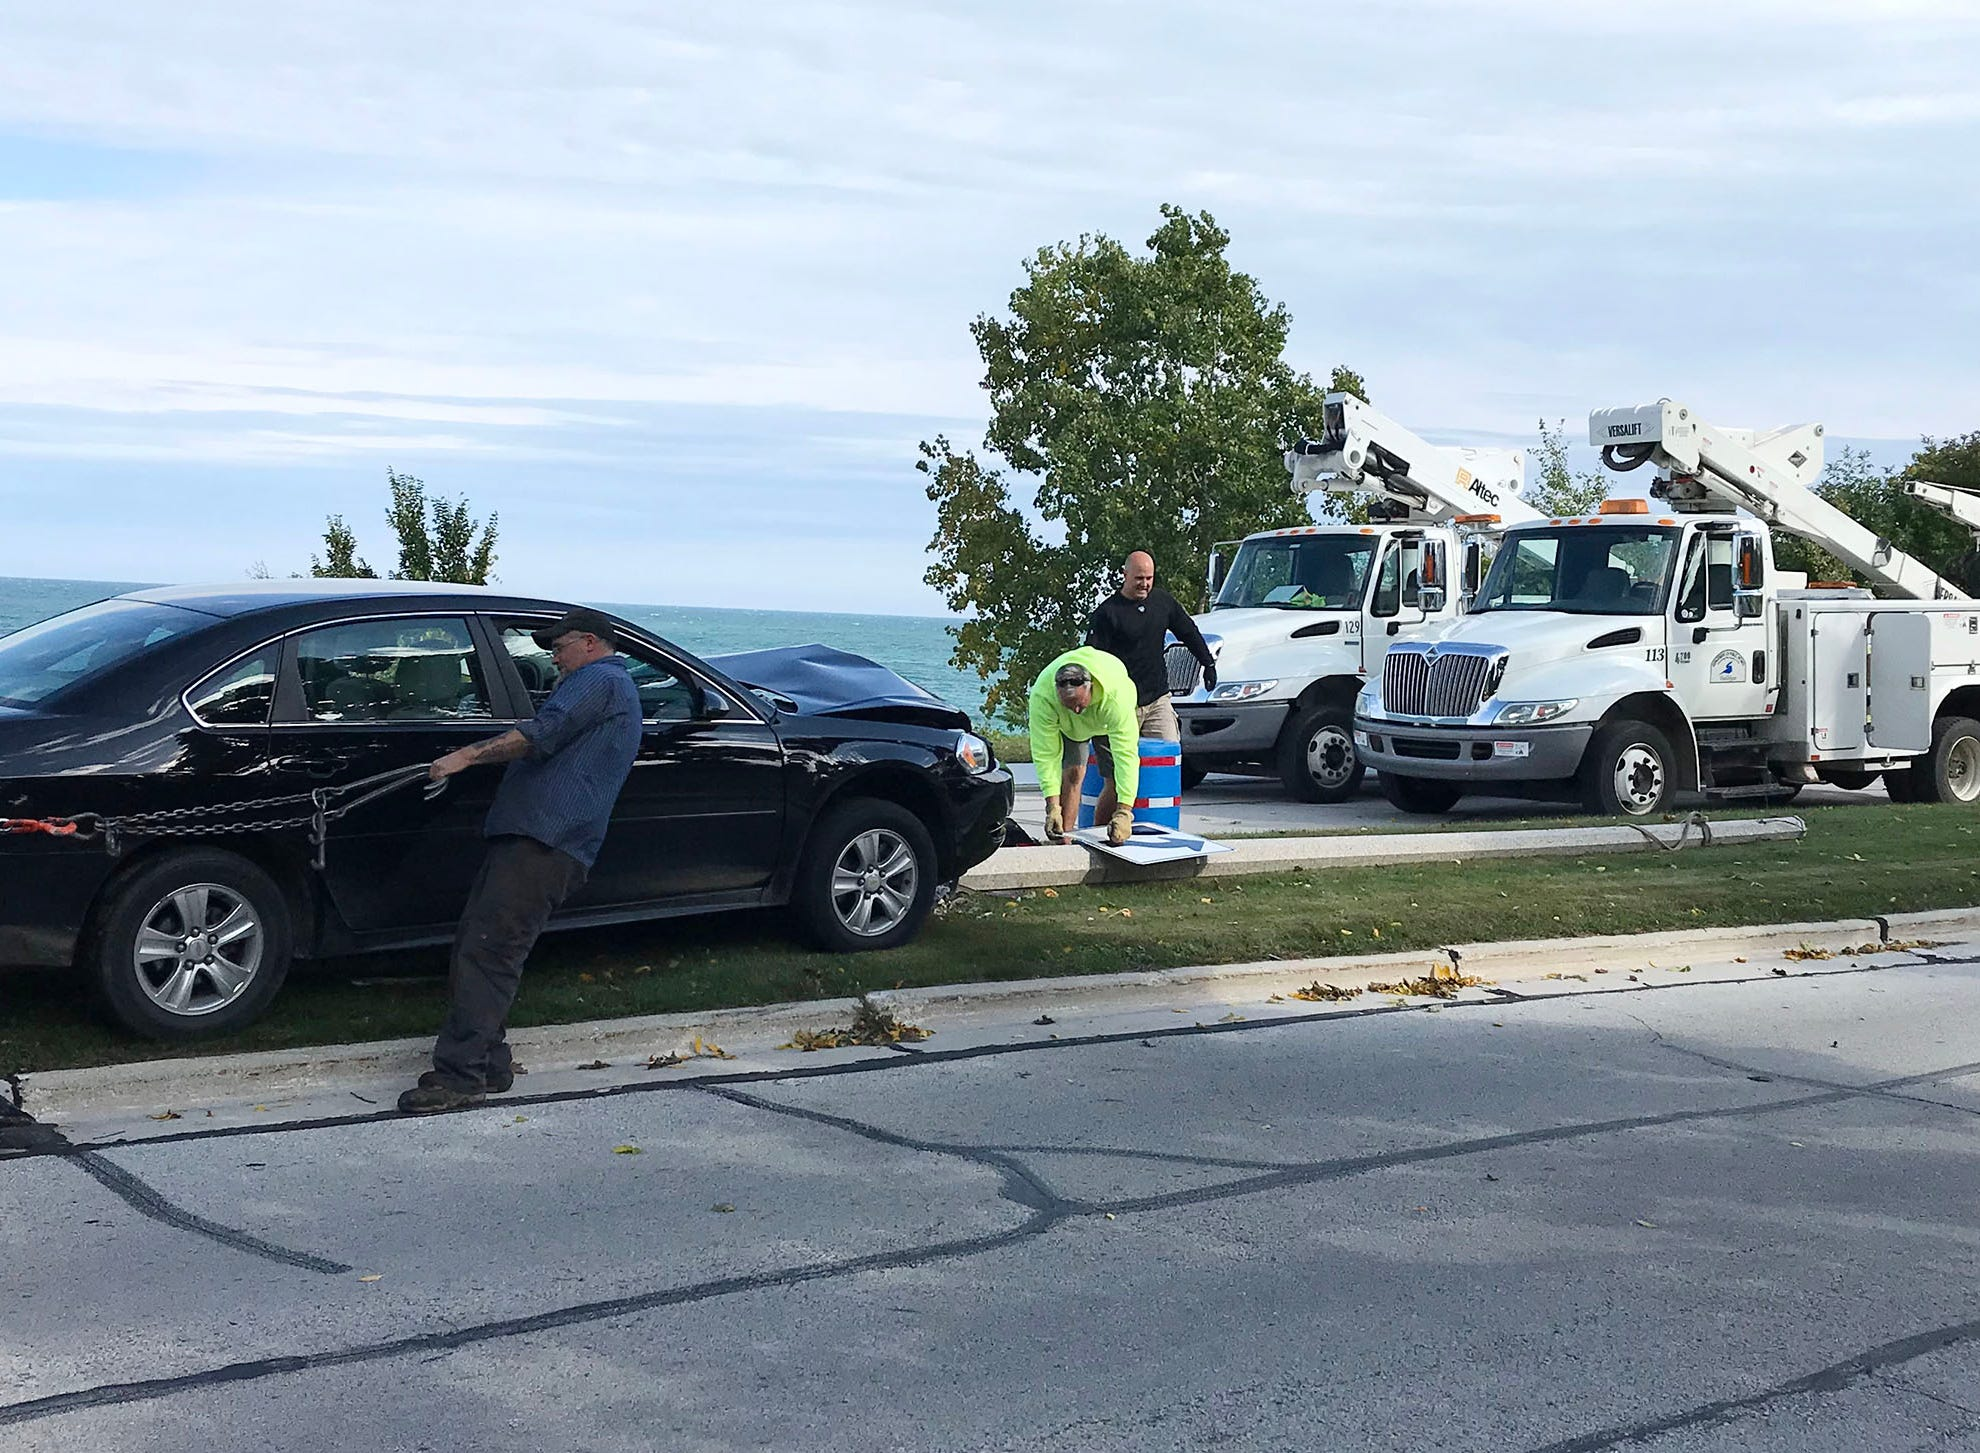 City of Sheboygan Police along with Public Works employees wait for Riteway Towing to remove a vehicle that struck a lamp pole, Thursday, September 27, 2018, in Sheboygan, Wis.